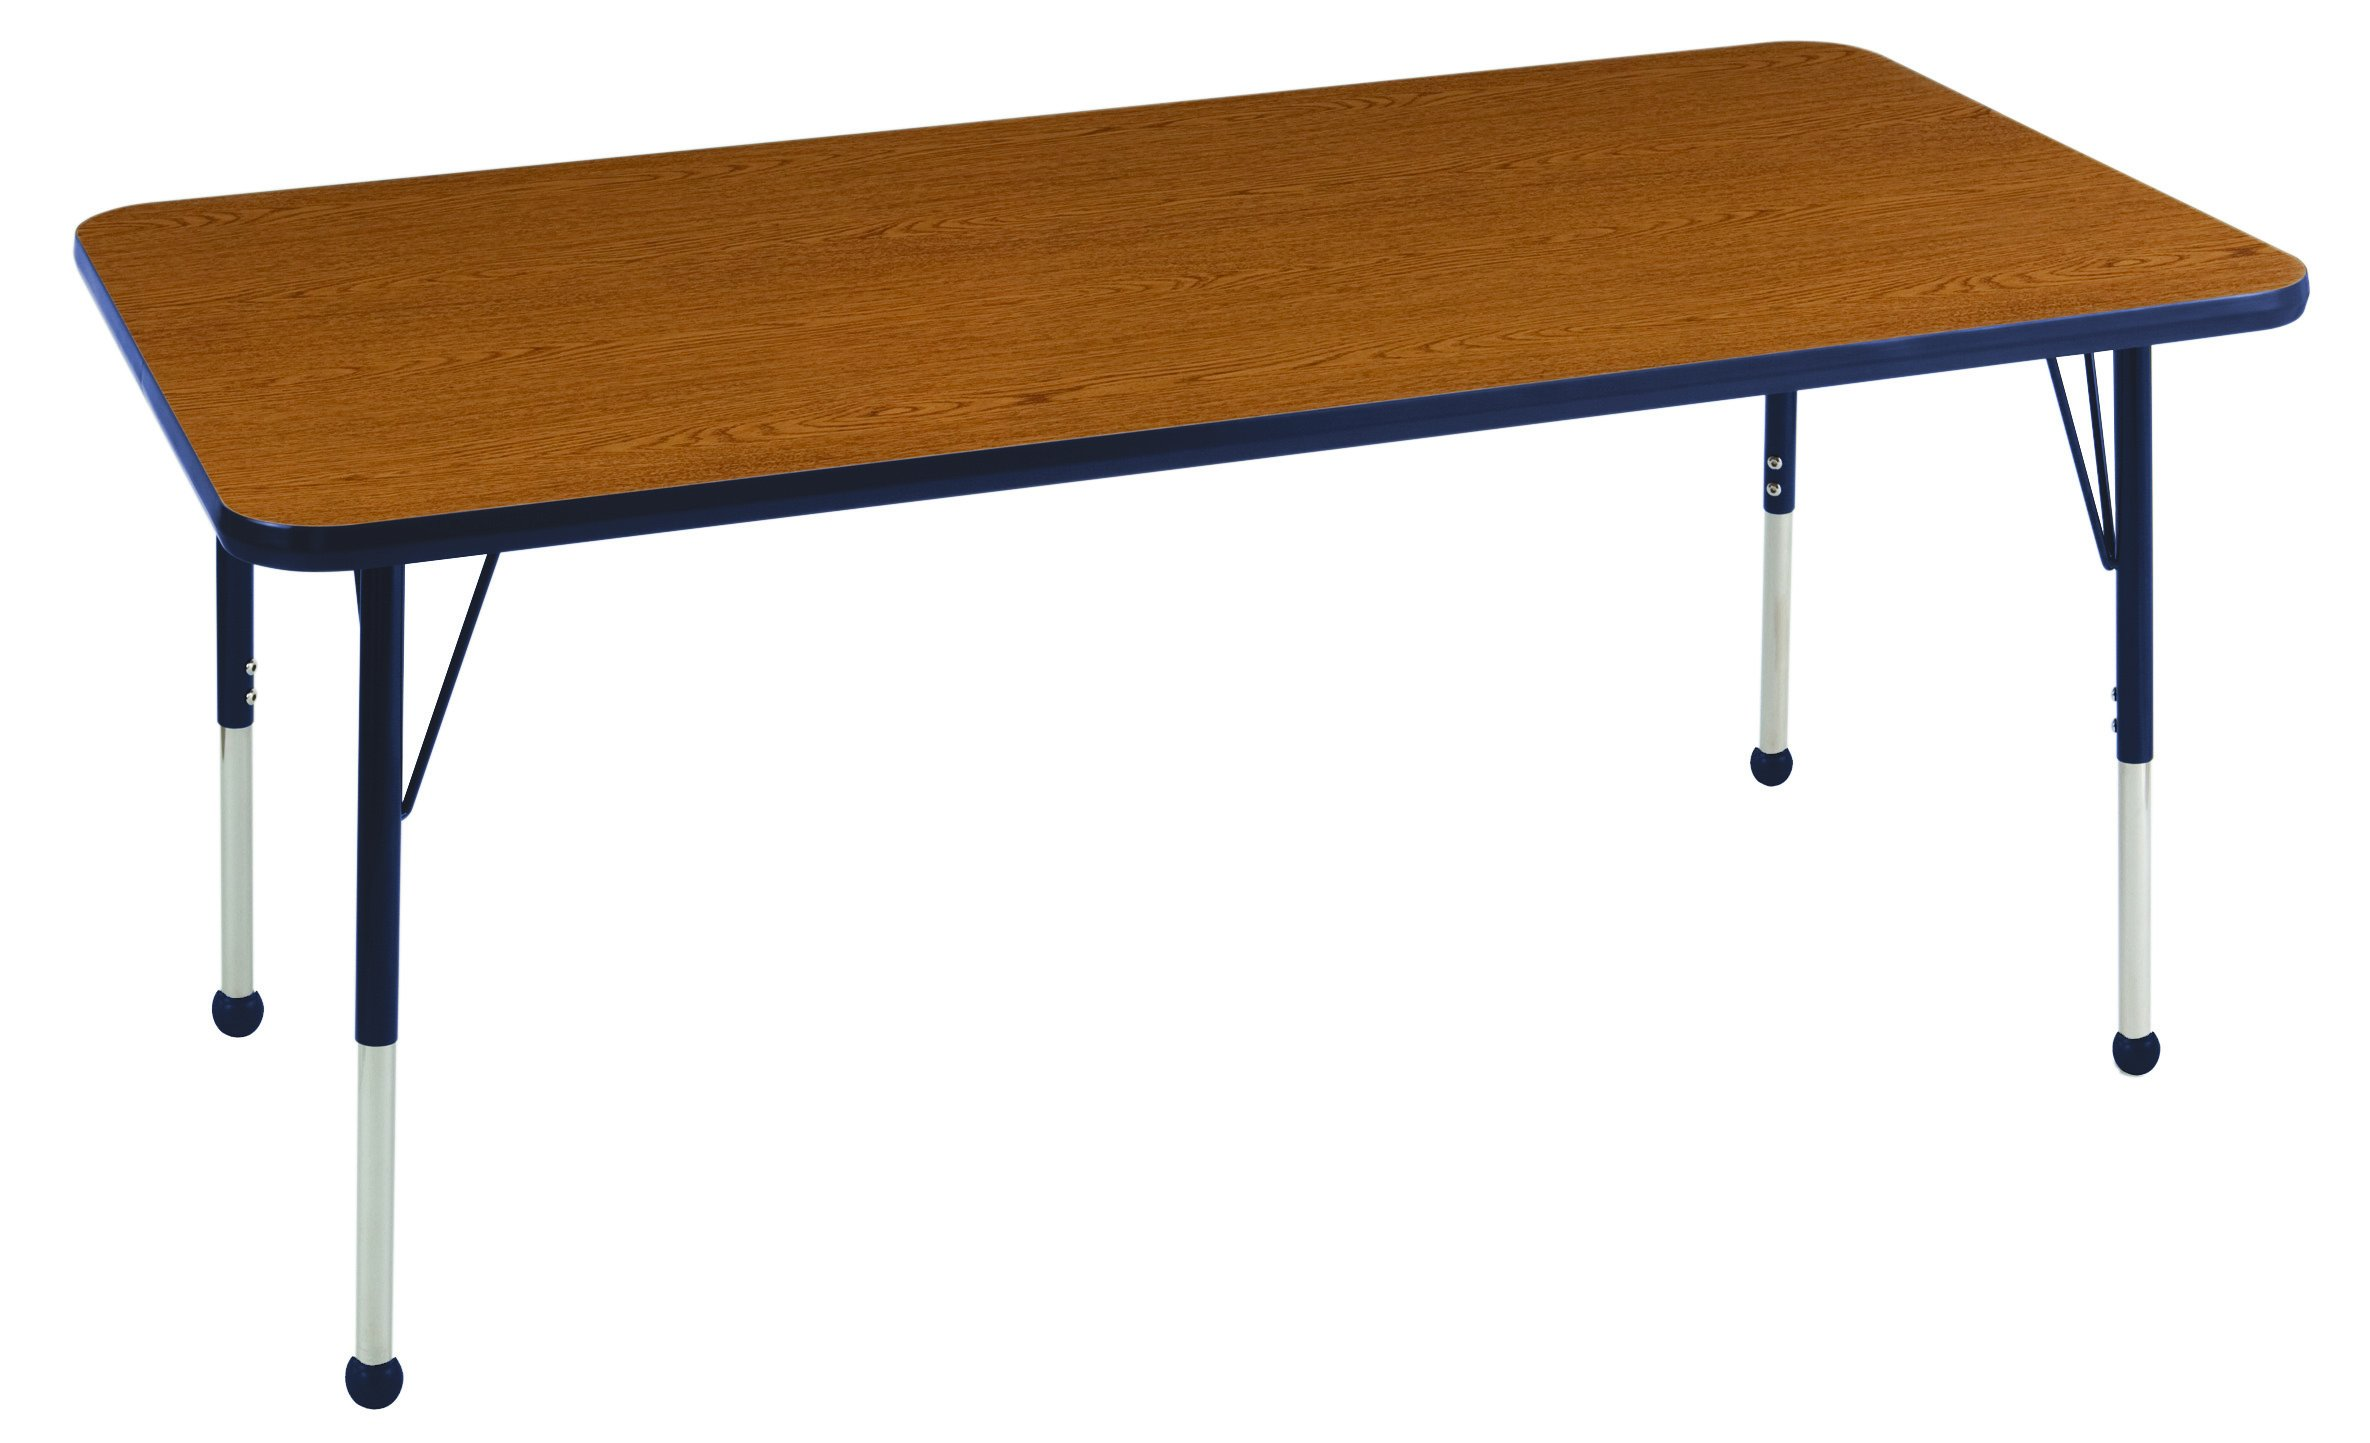 ECR4Kids T-Mold 30'' x 60'' Rectangular Activity School Table, Toddler Legs w/ Ball Glides, Adjustable Height 15-23 inch (Oak/Navy) by ECR4Kids